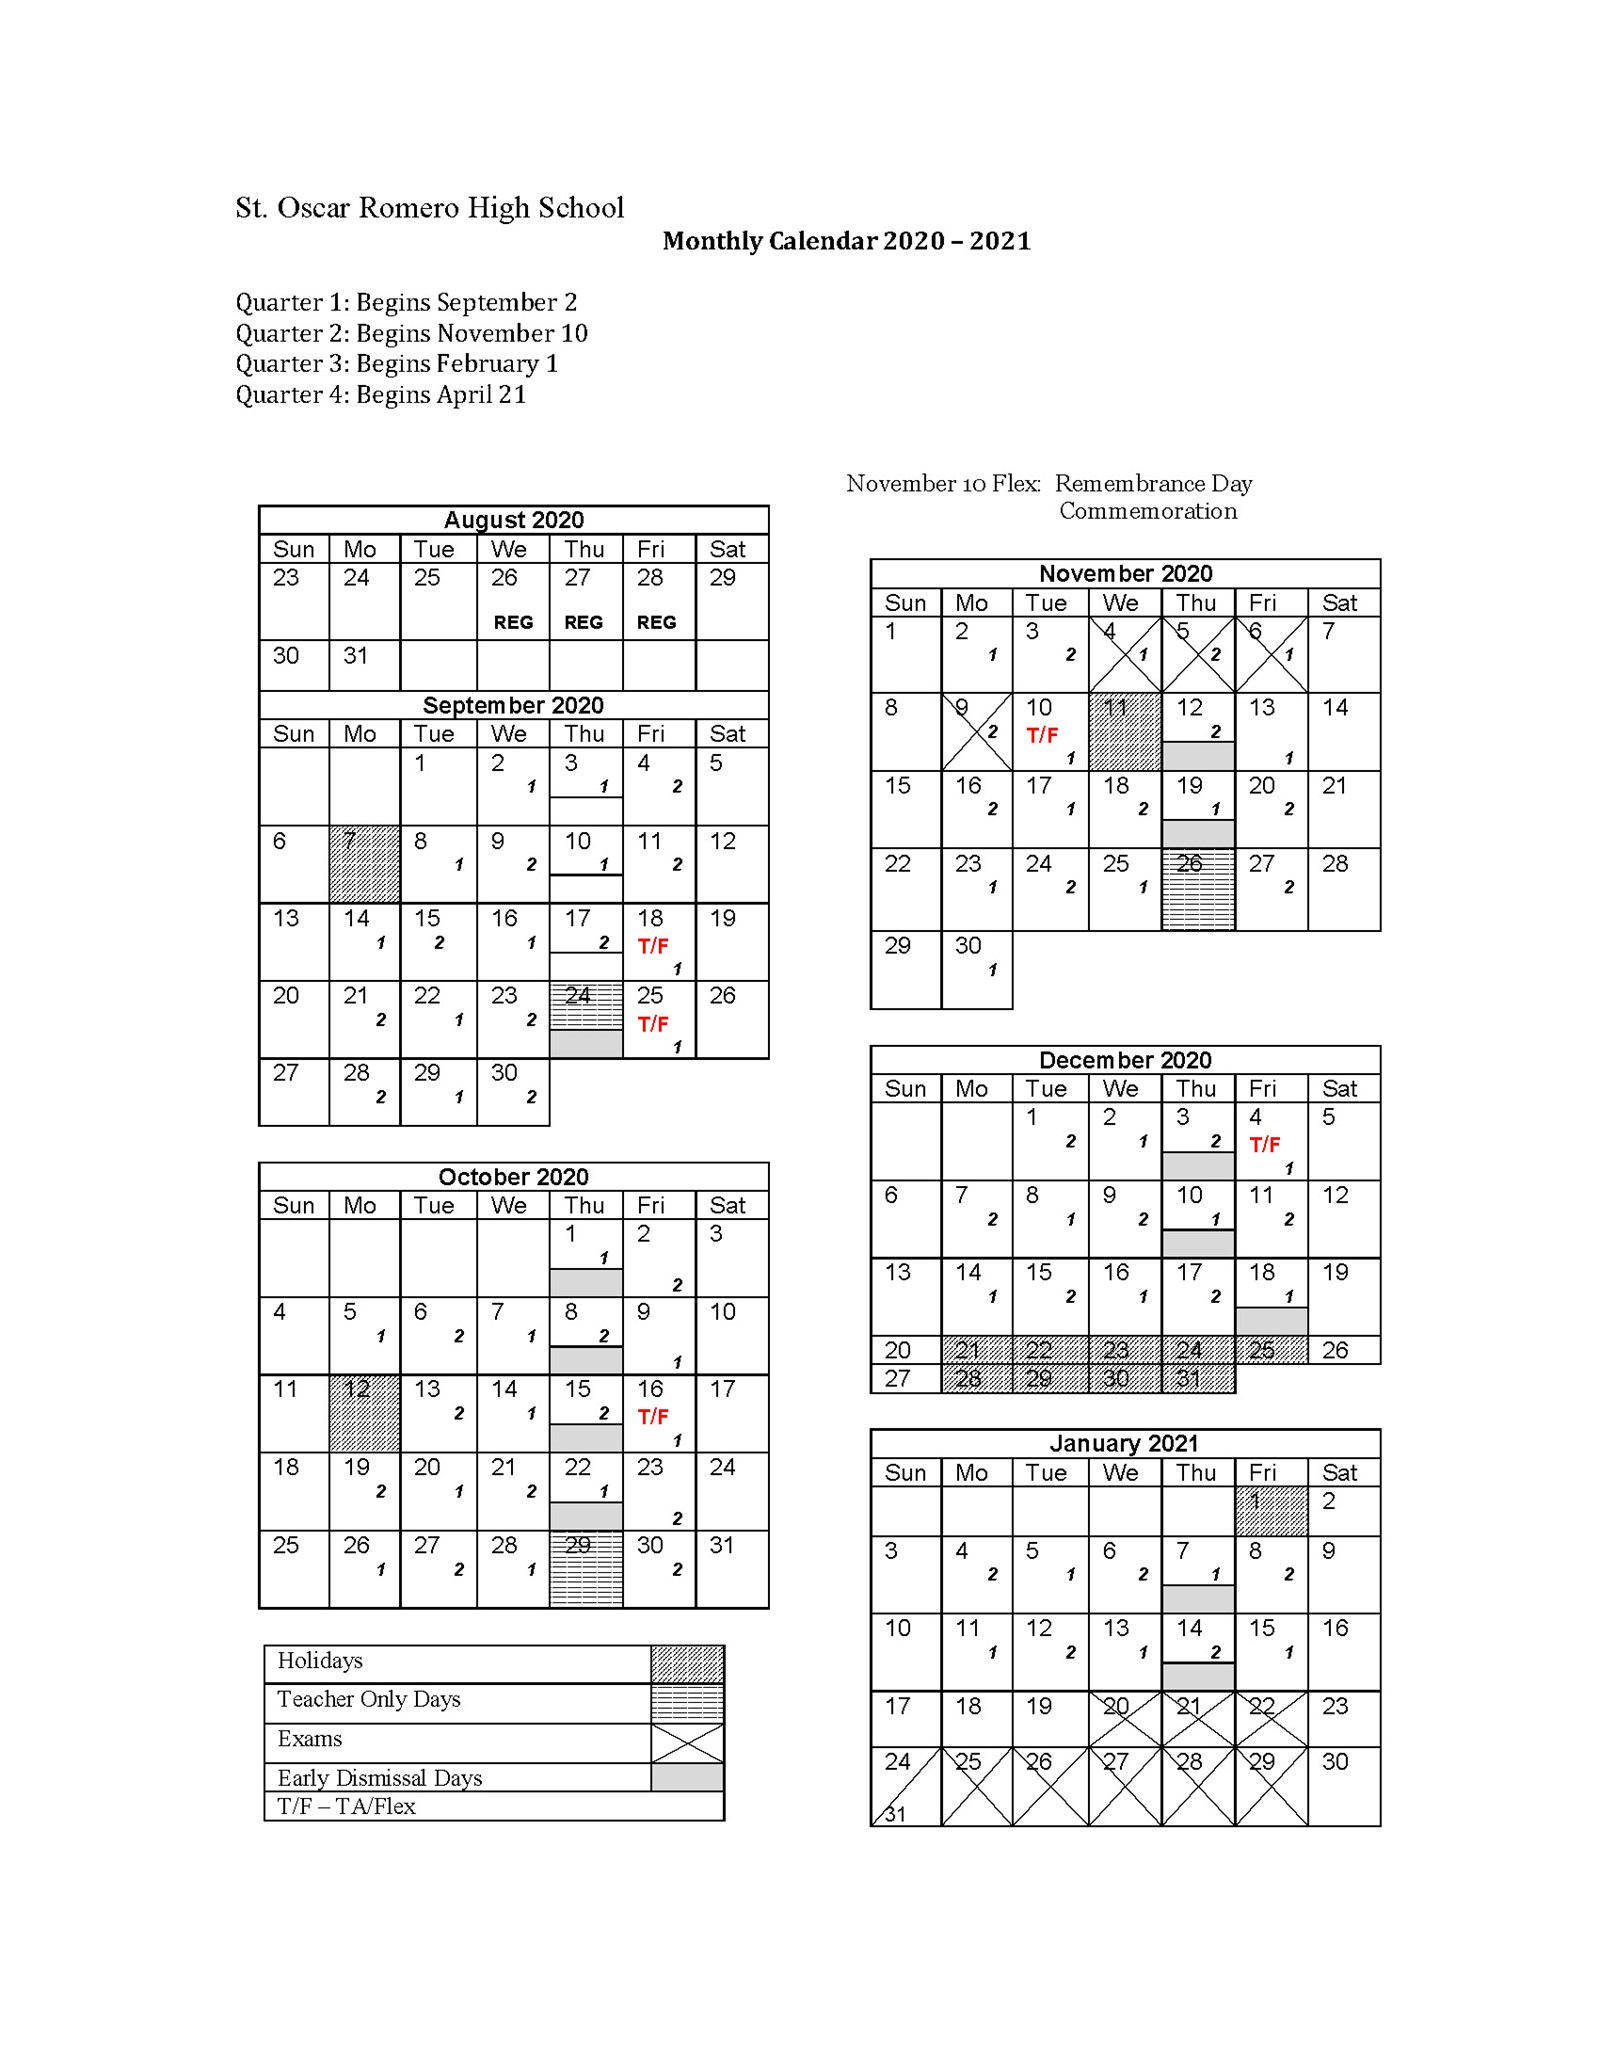 Monthly Day Calendar 20-21 (002) (1)_Page_1.jpg